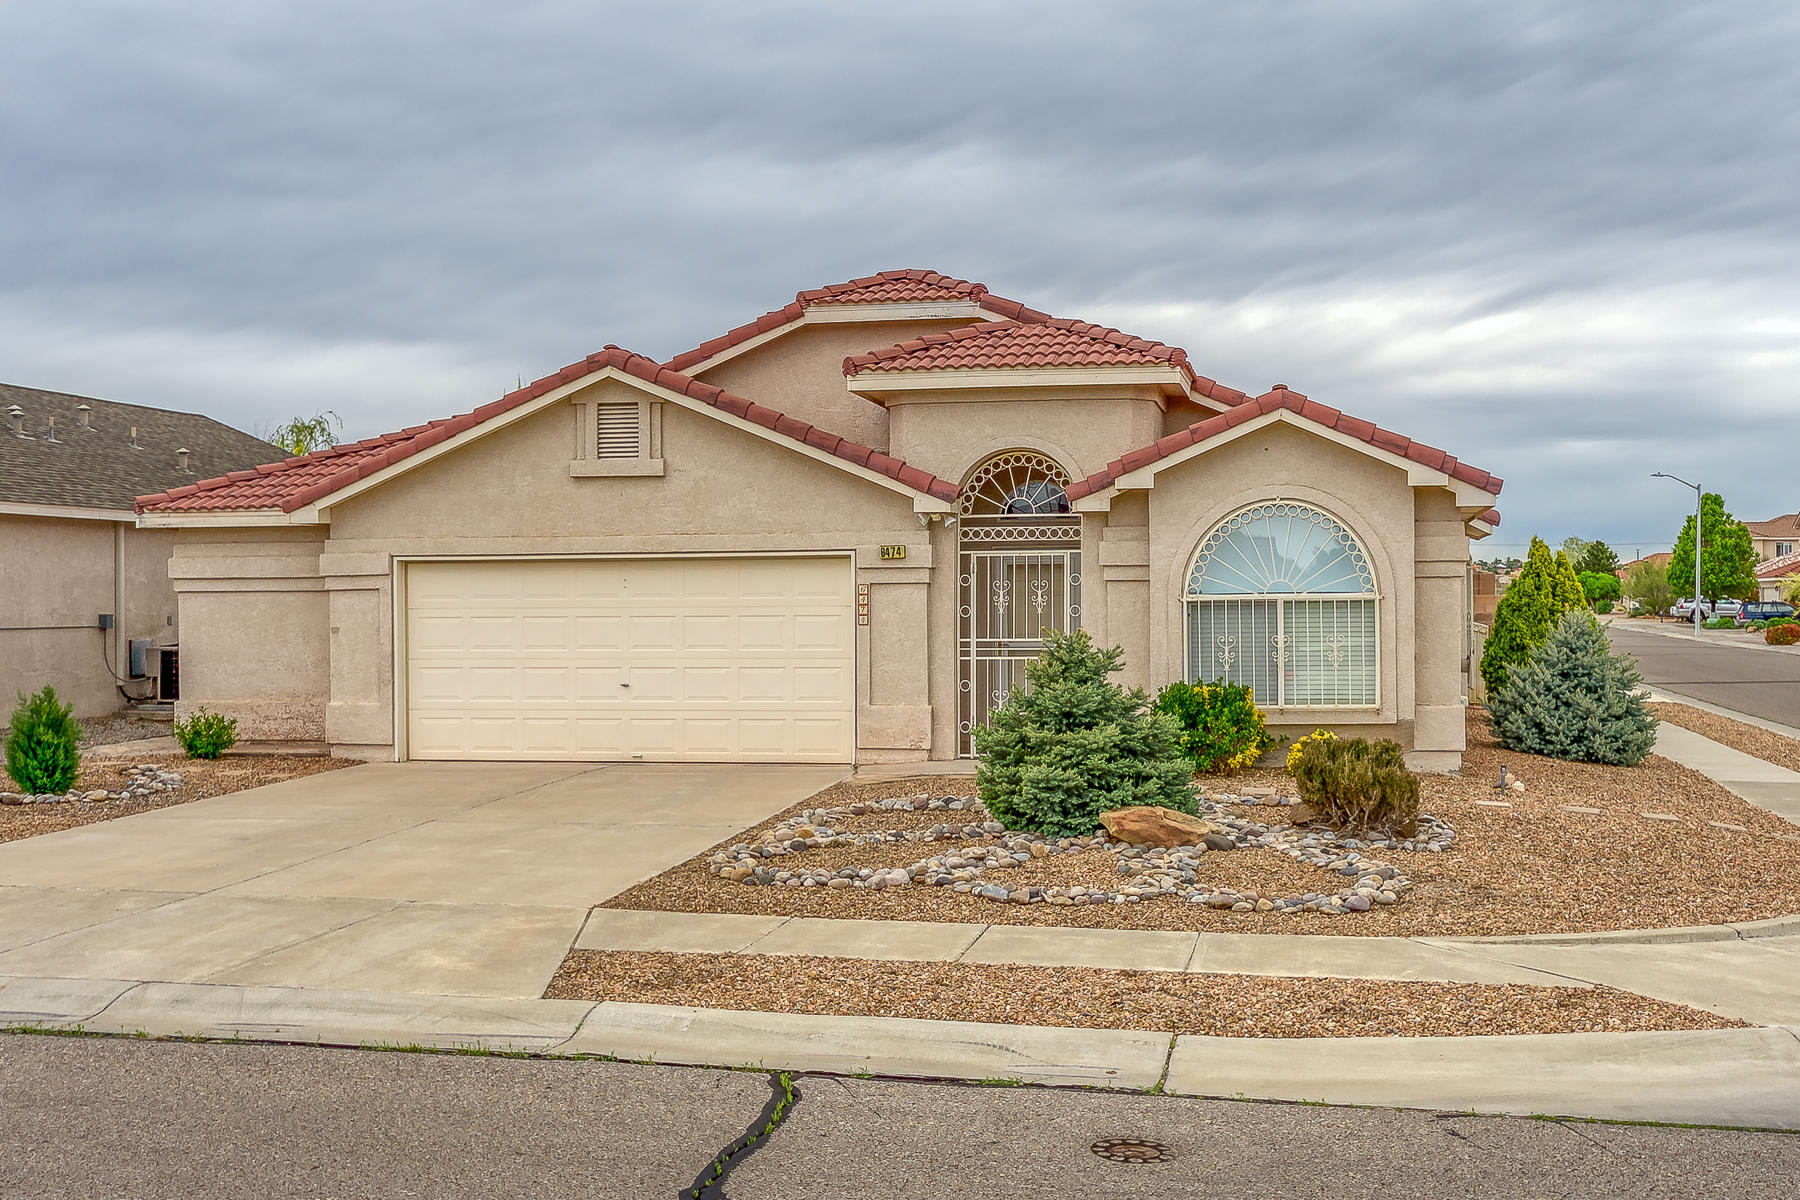 6474 NW Brenton Drive, Northwest Albuquerque and Northwest Heights, New Mexico